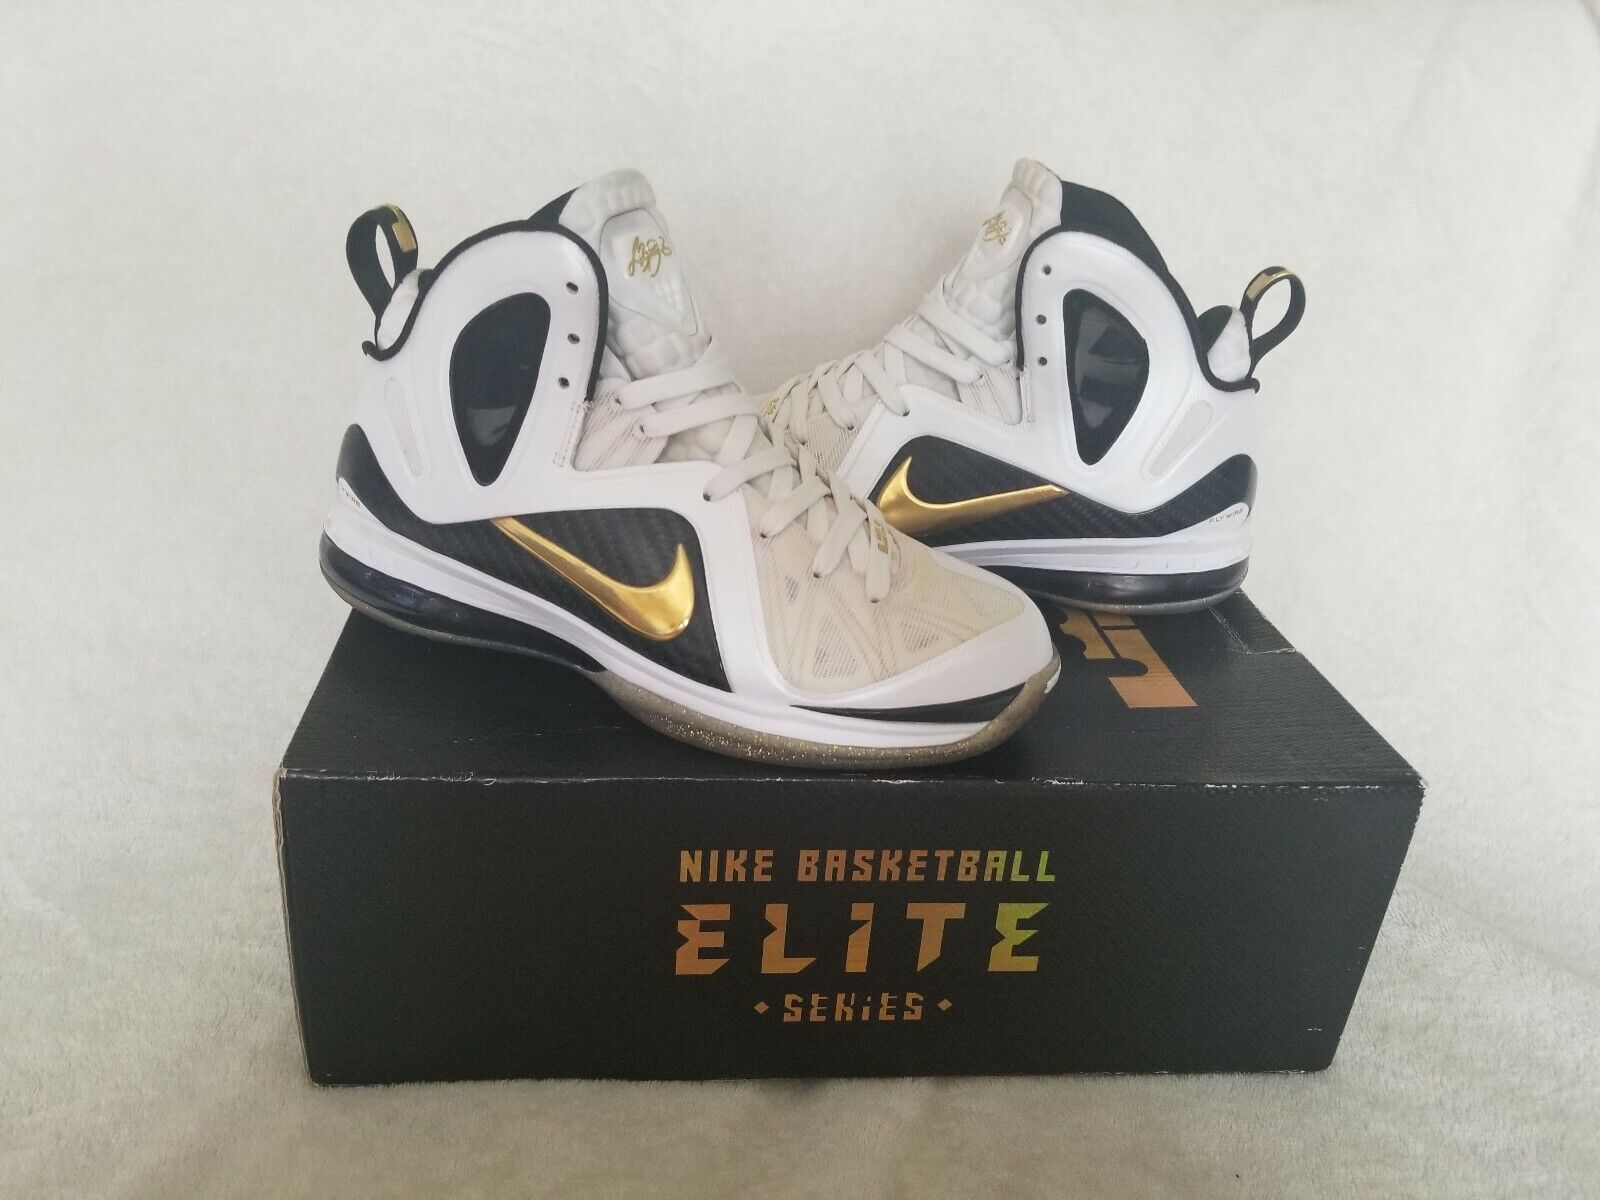 sale retailer 5dca0 4f7ad ... Retro Hong Kong Men s shoes Trainers US 9.5,. Nike Lebron PS Elite 9 s  In A Size 8.0 8.0 8.0 d92ca7